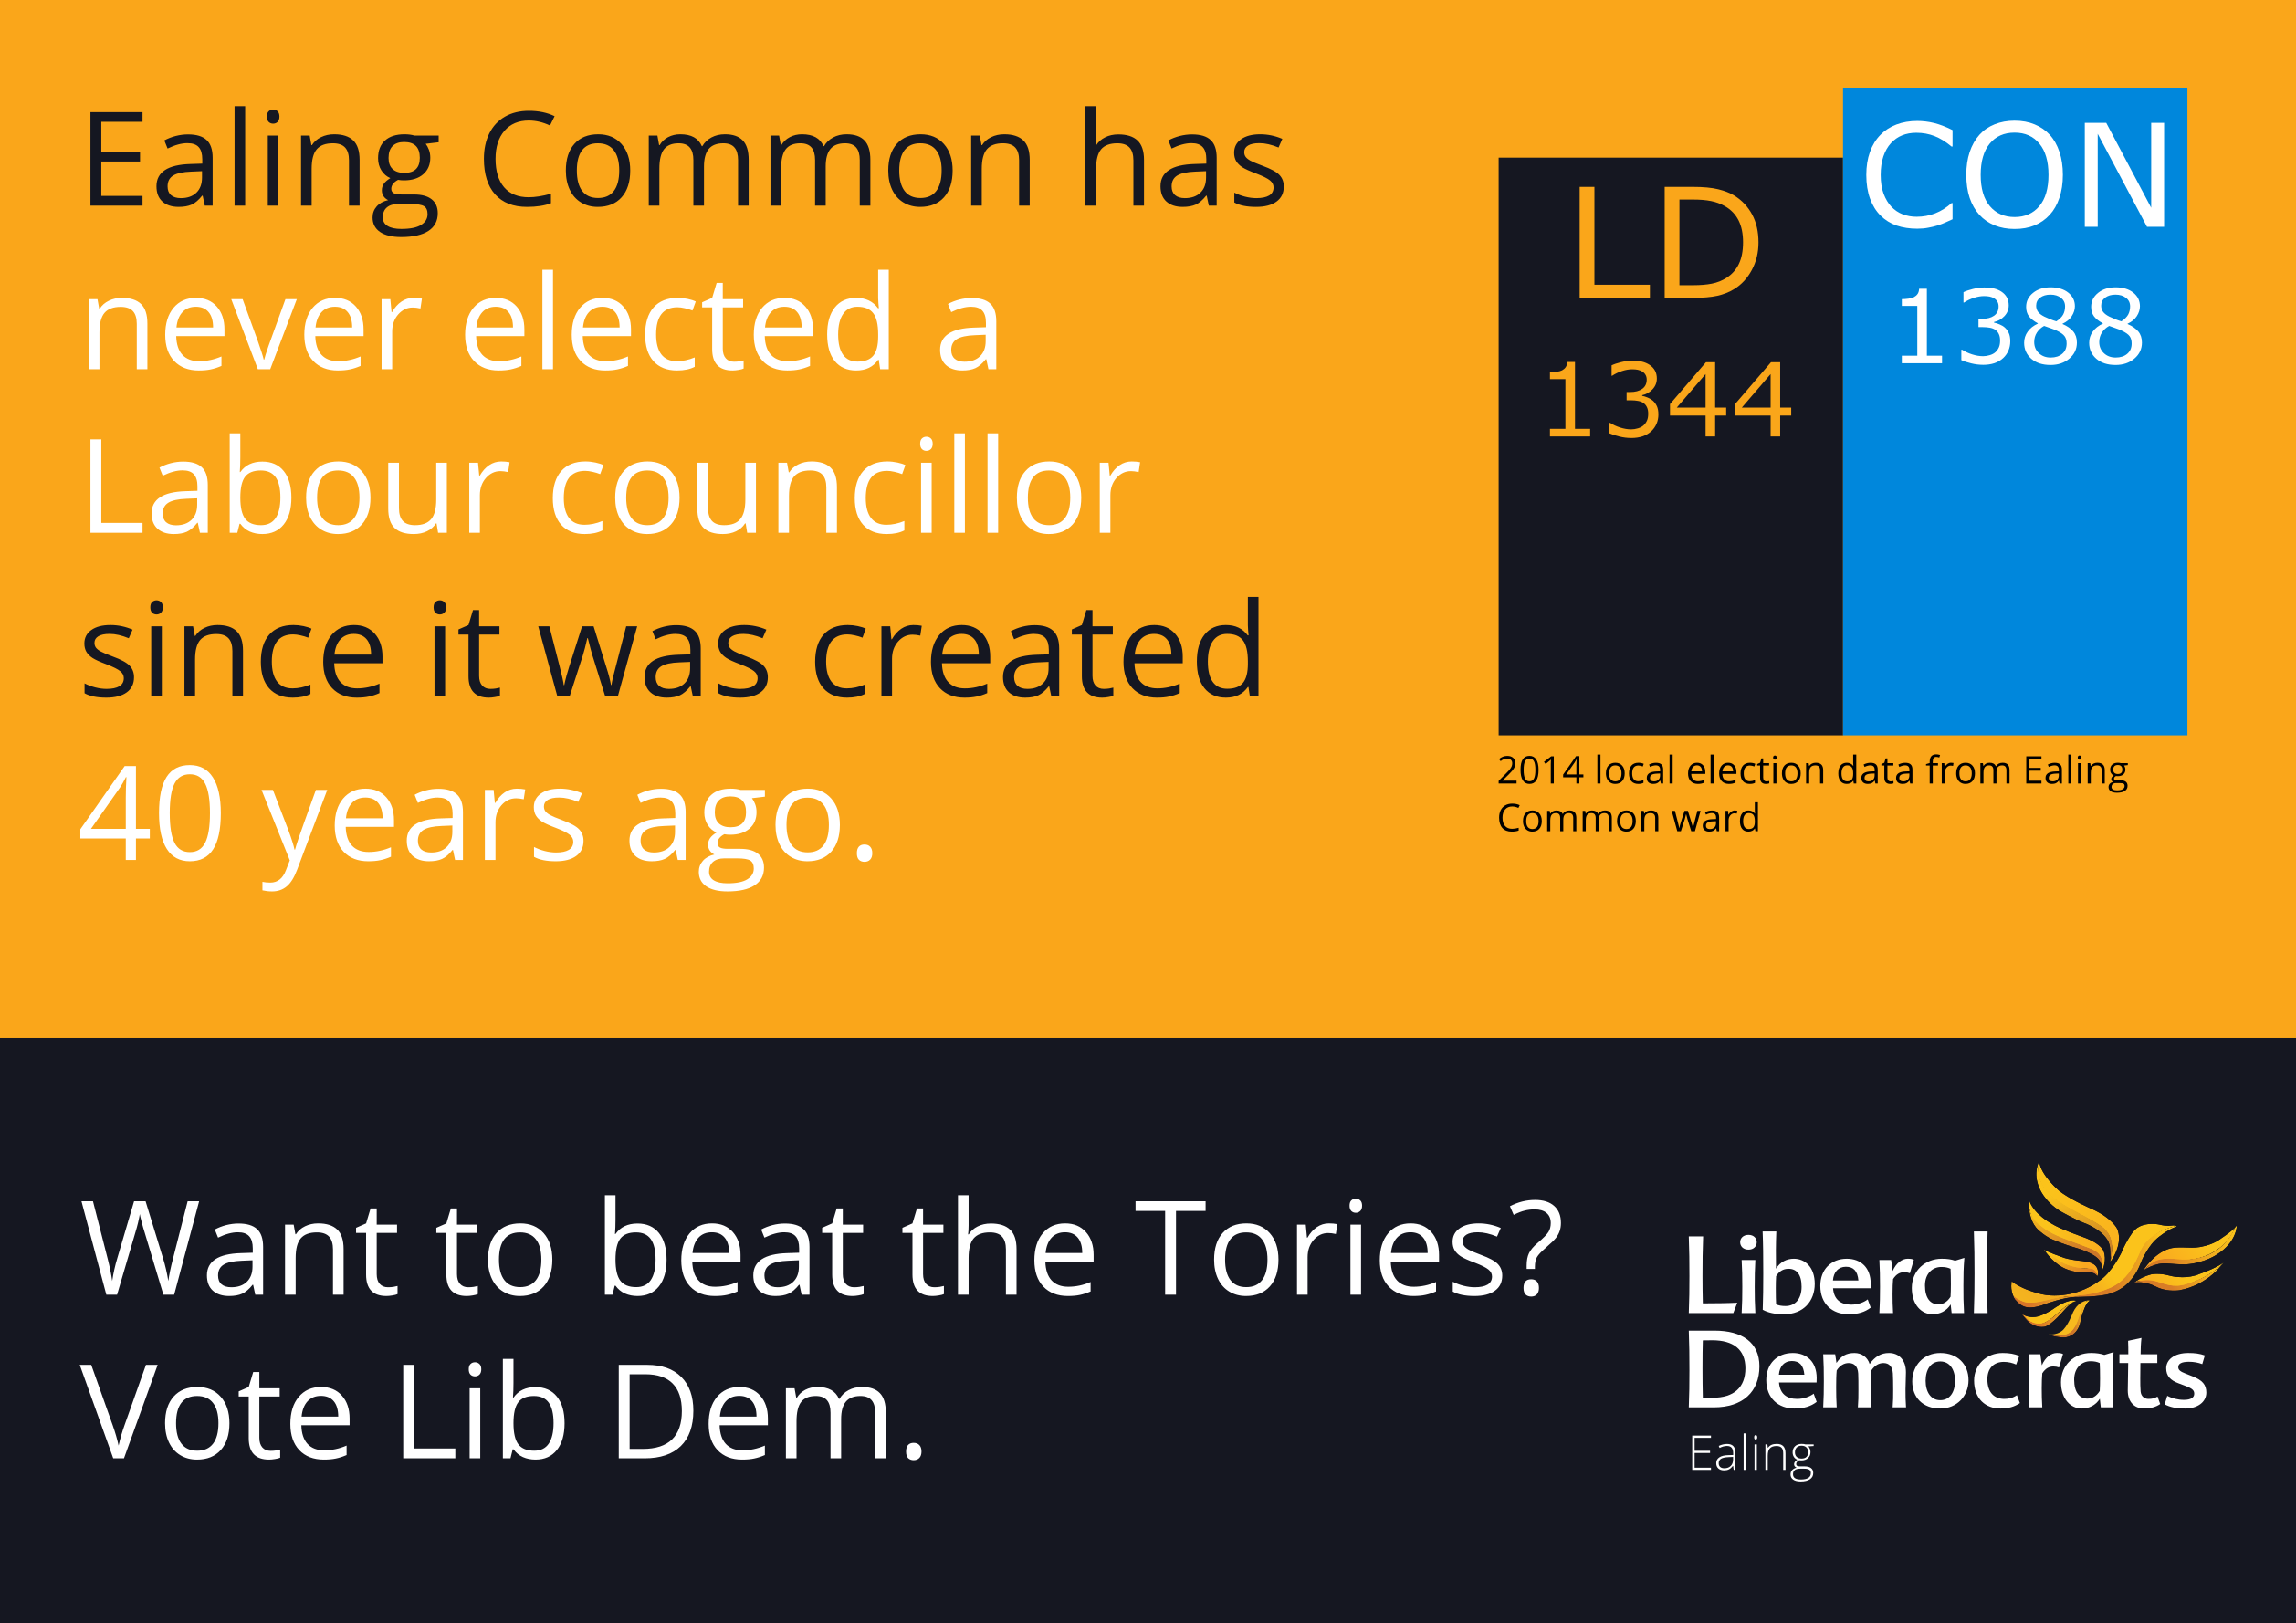 There's only 44 votes between the Tories and the Lib Dems.